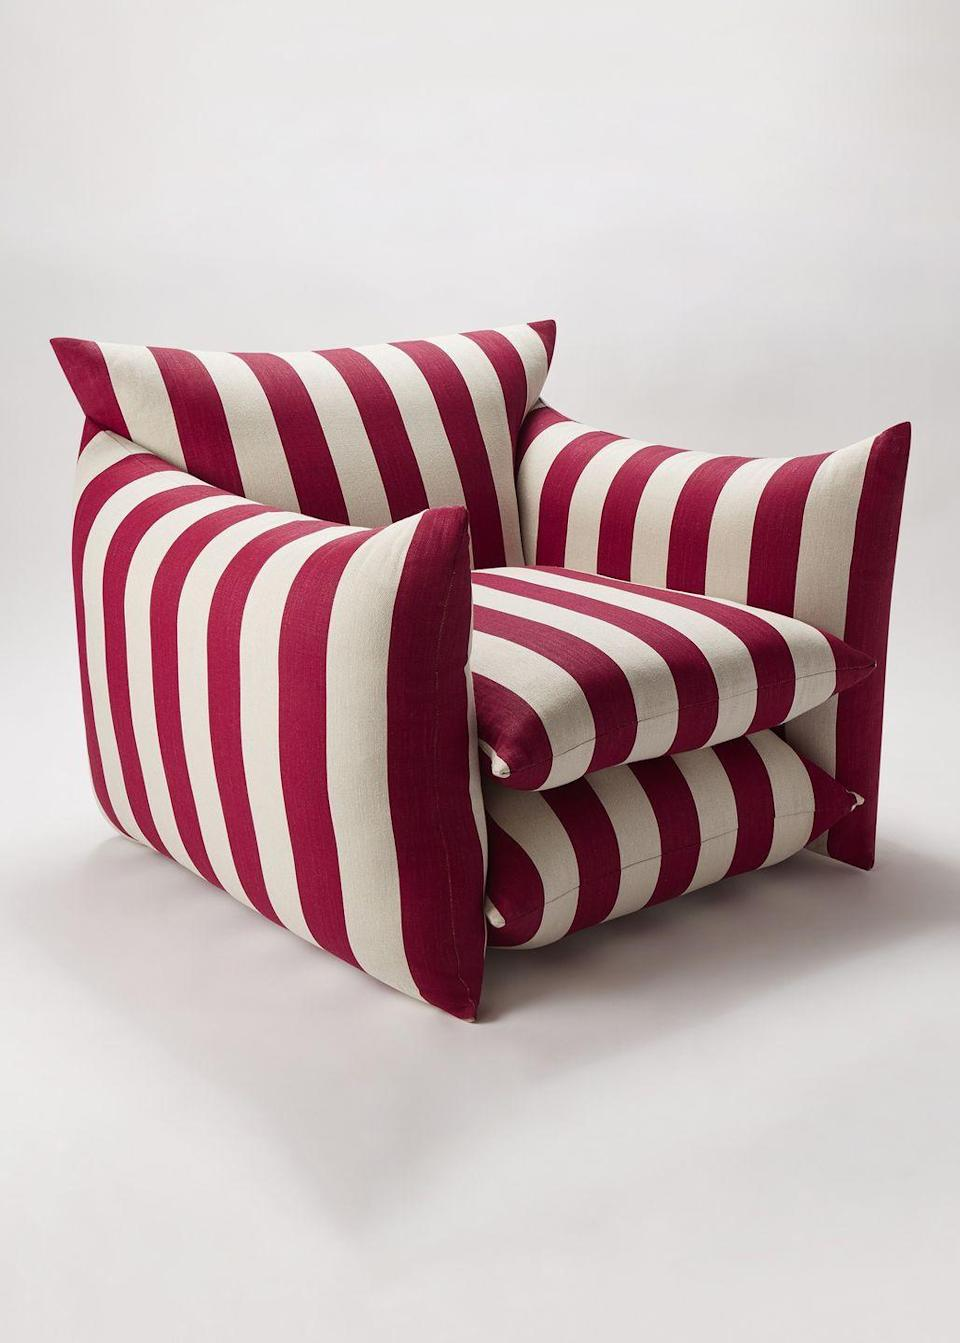 """<p>London creative firm Buchanan Studio's first foray into furniture is the 'Studio Chair'. Combining craftsmanship, comfort and dashing stripes, which come in 'Ruby' (pictured), 'Indigo' and 'Rose', it's a confident debut and a taste of things to come. £2,394, <a href=""""https://buchanan.studio/"""" rel=""""nofollow noopener"""" target=""""_blank"""" data-ylk=""""slk:buchanan.studio"""" class=""""link rapid-noclick-resp"""">buchanan.studio</a></p>"""